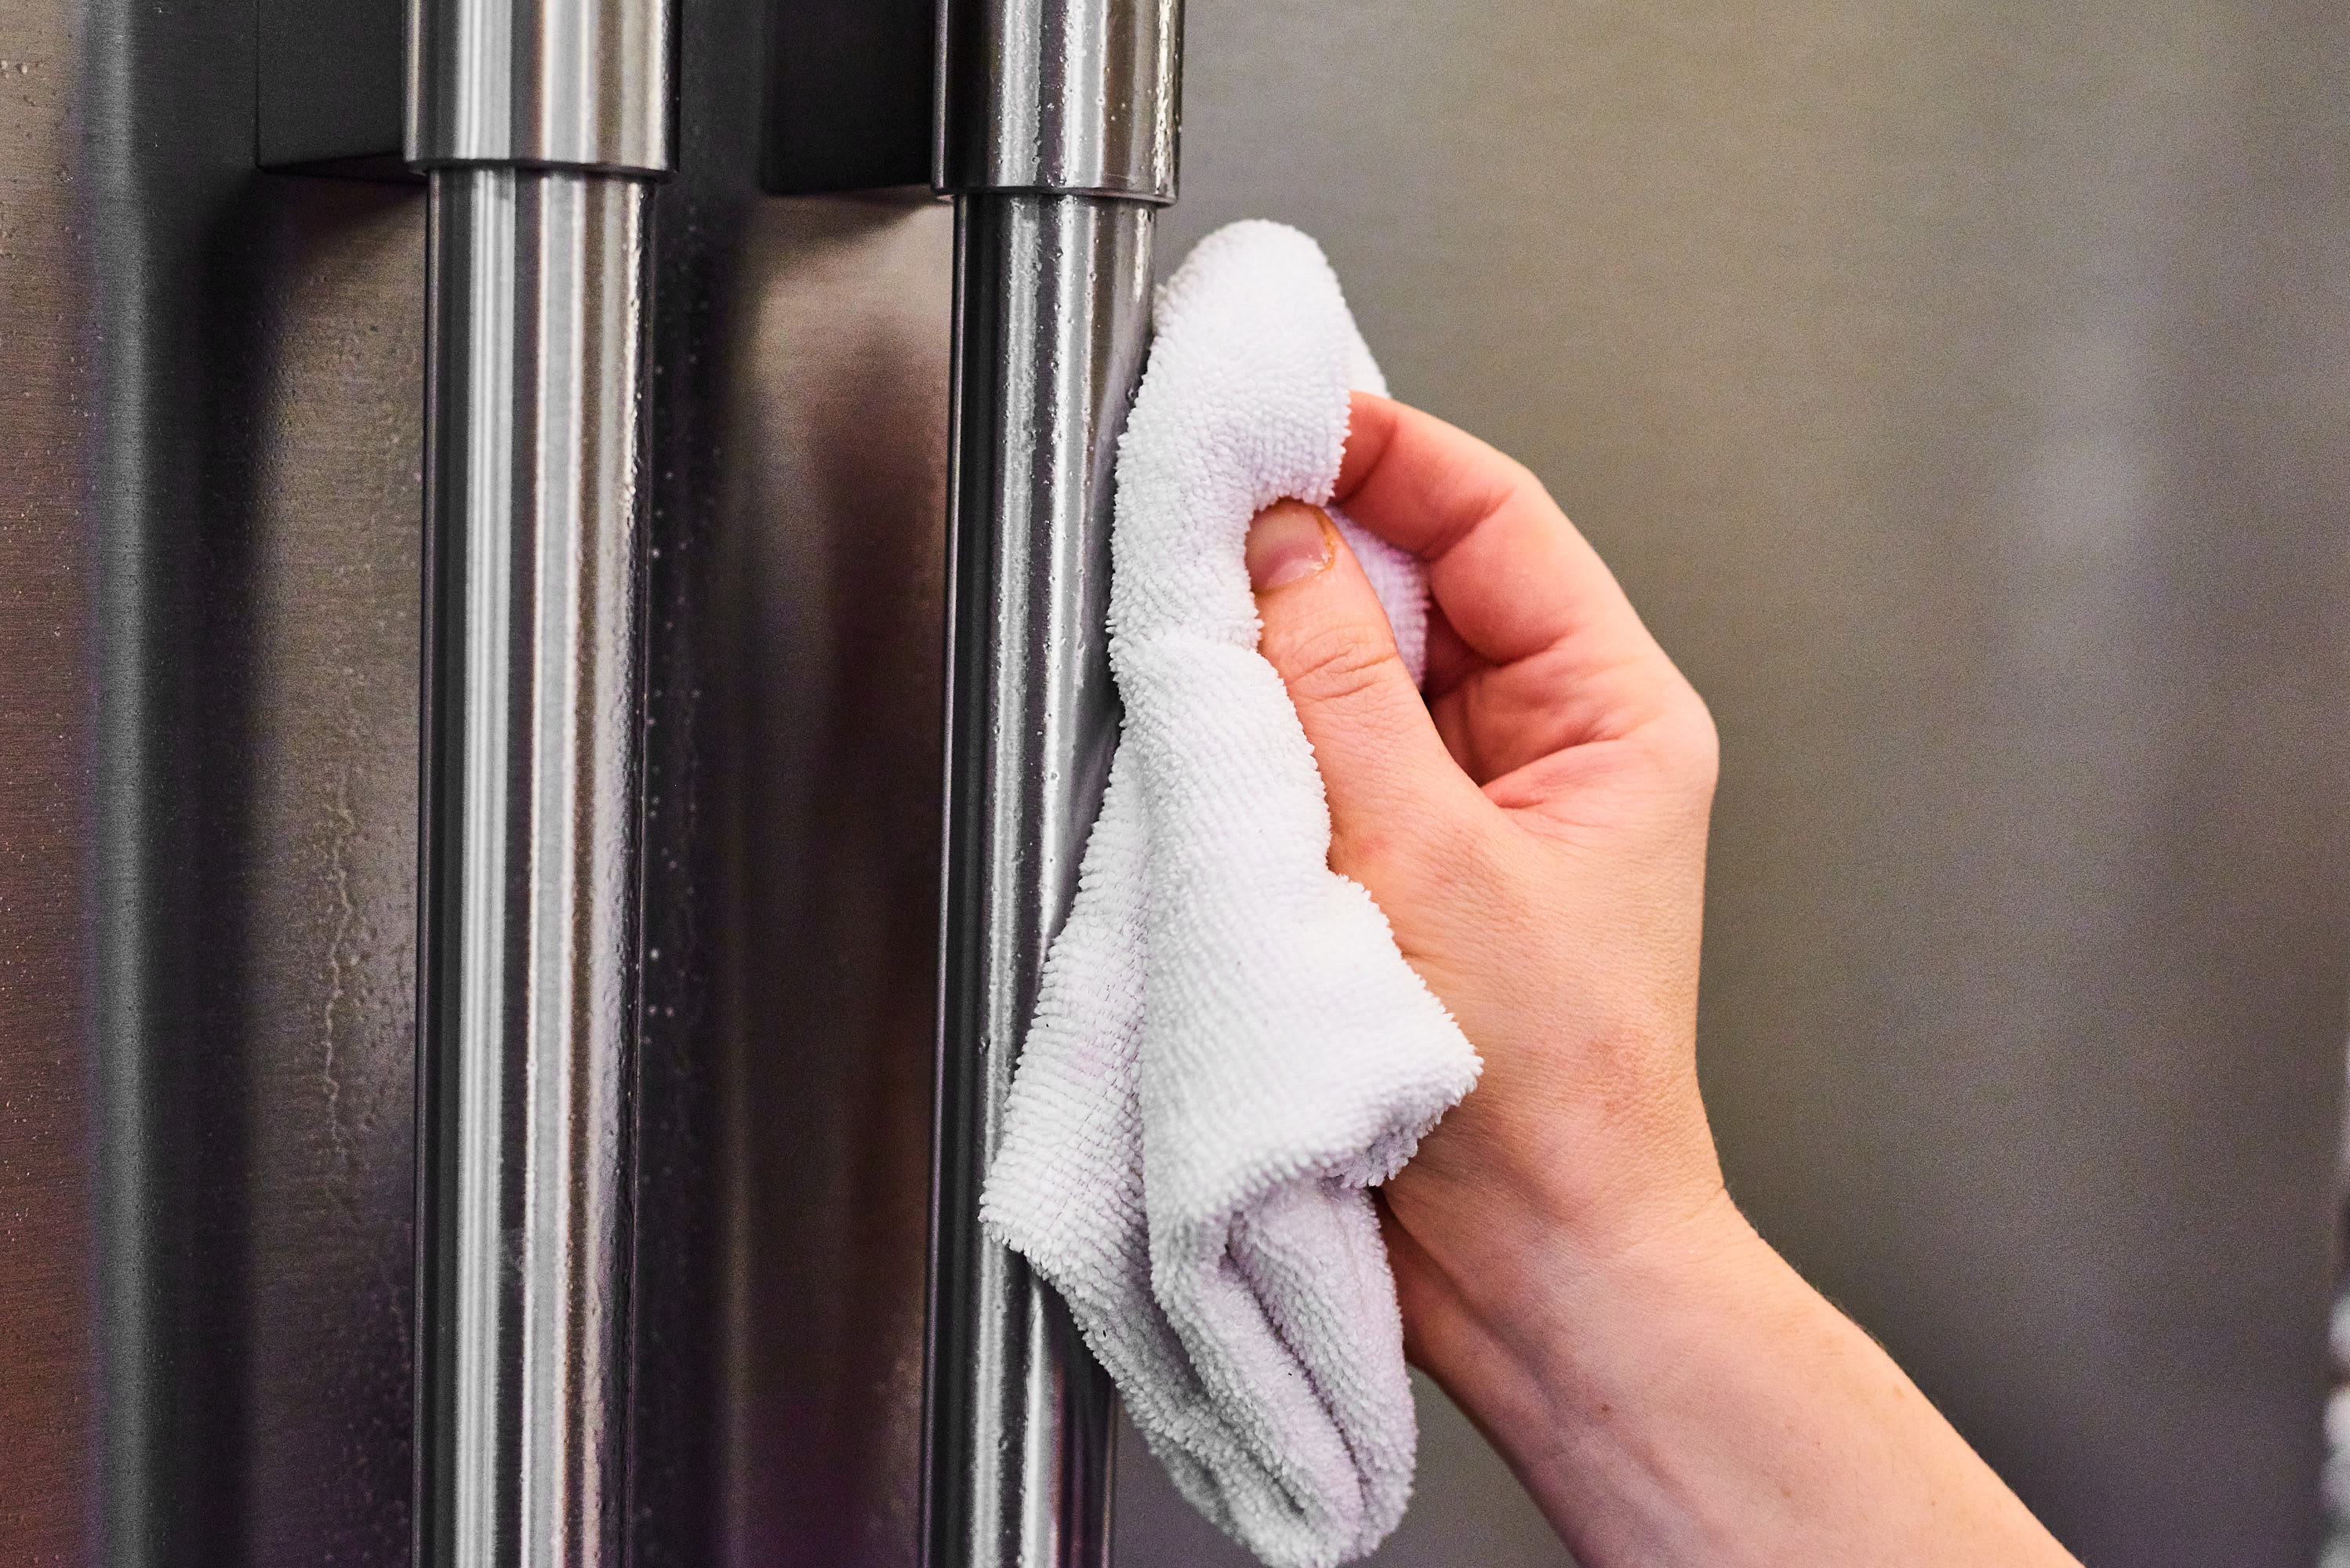 How To Properly Wipe Down Your Germy Appliance Handles: gallery image 2